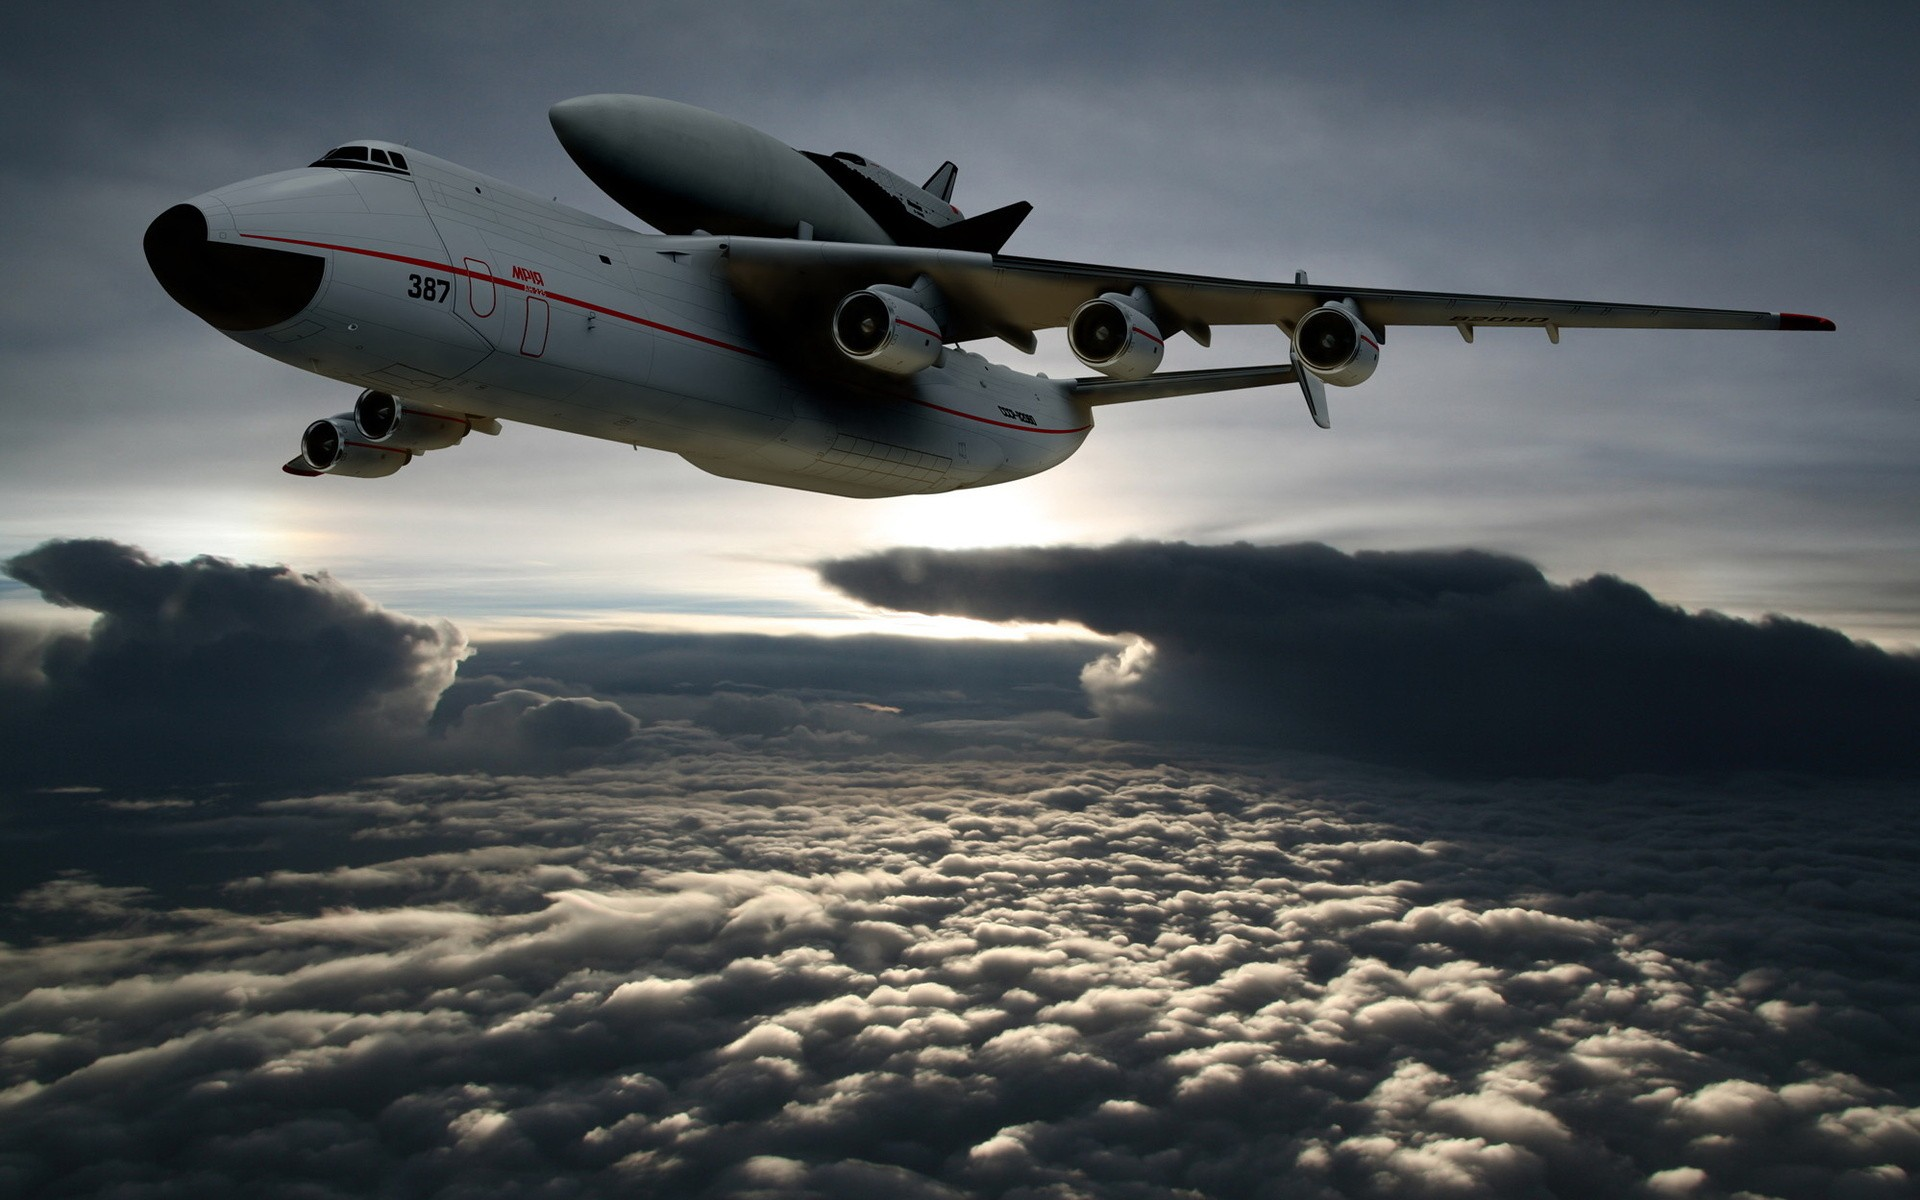 The space shuttle docked to the cargo plane flying above the clouds